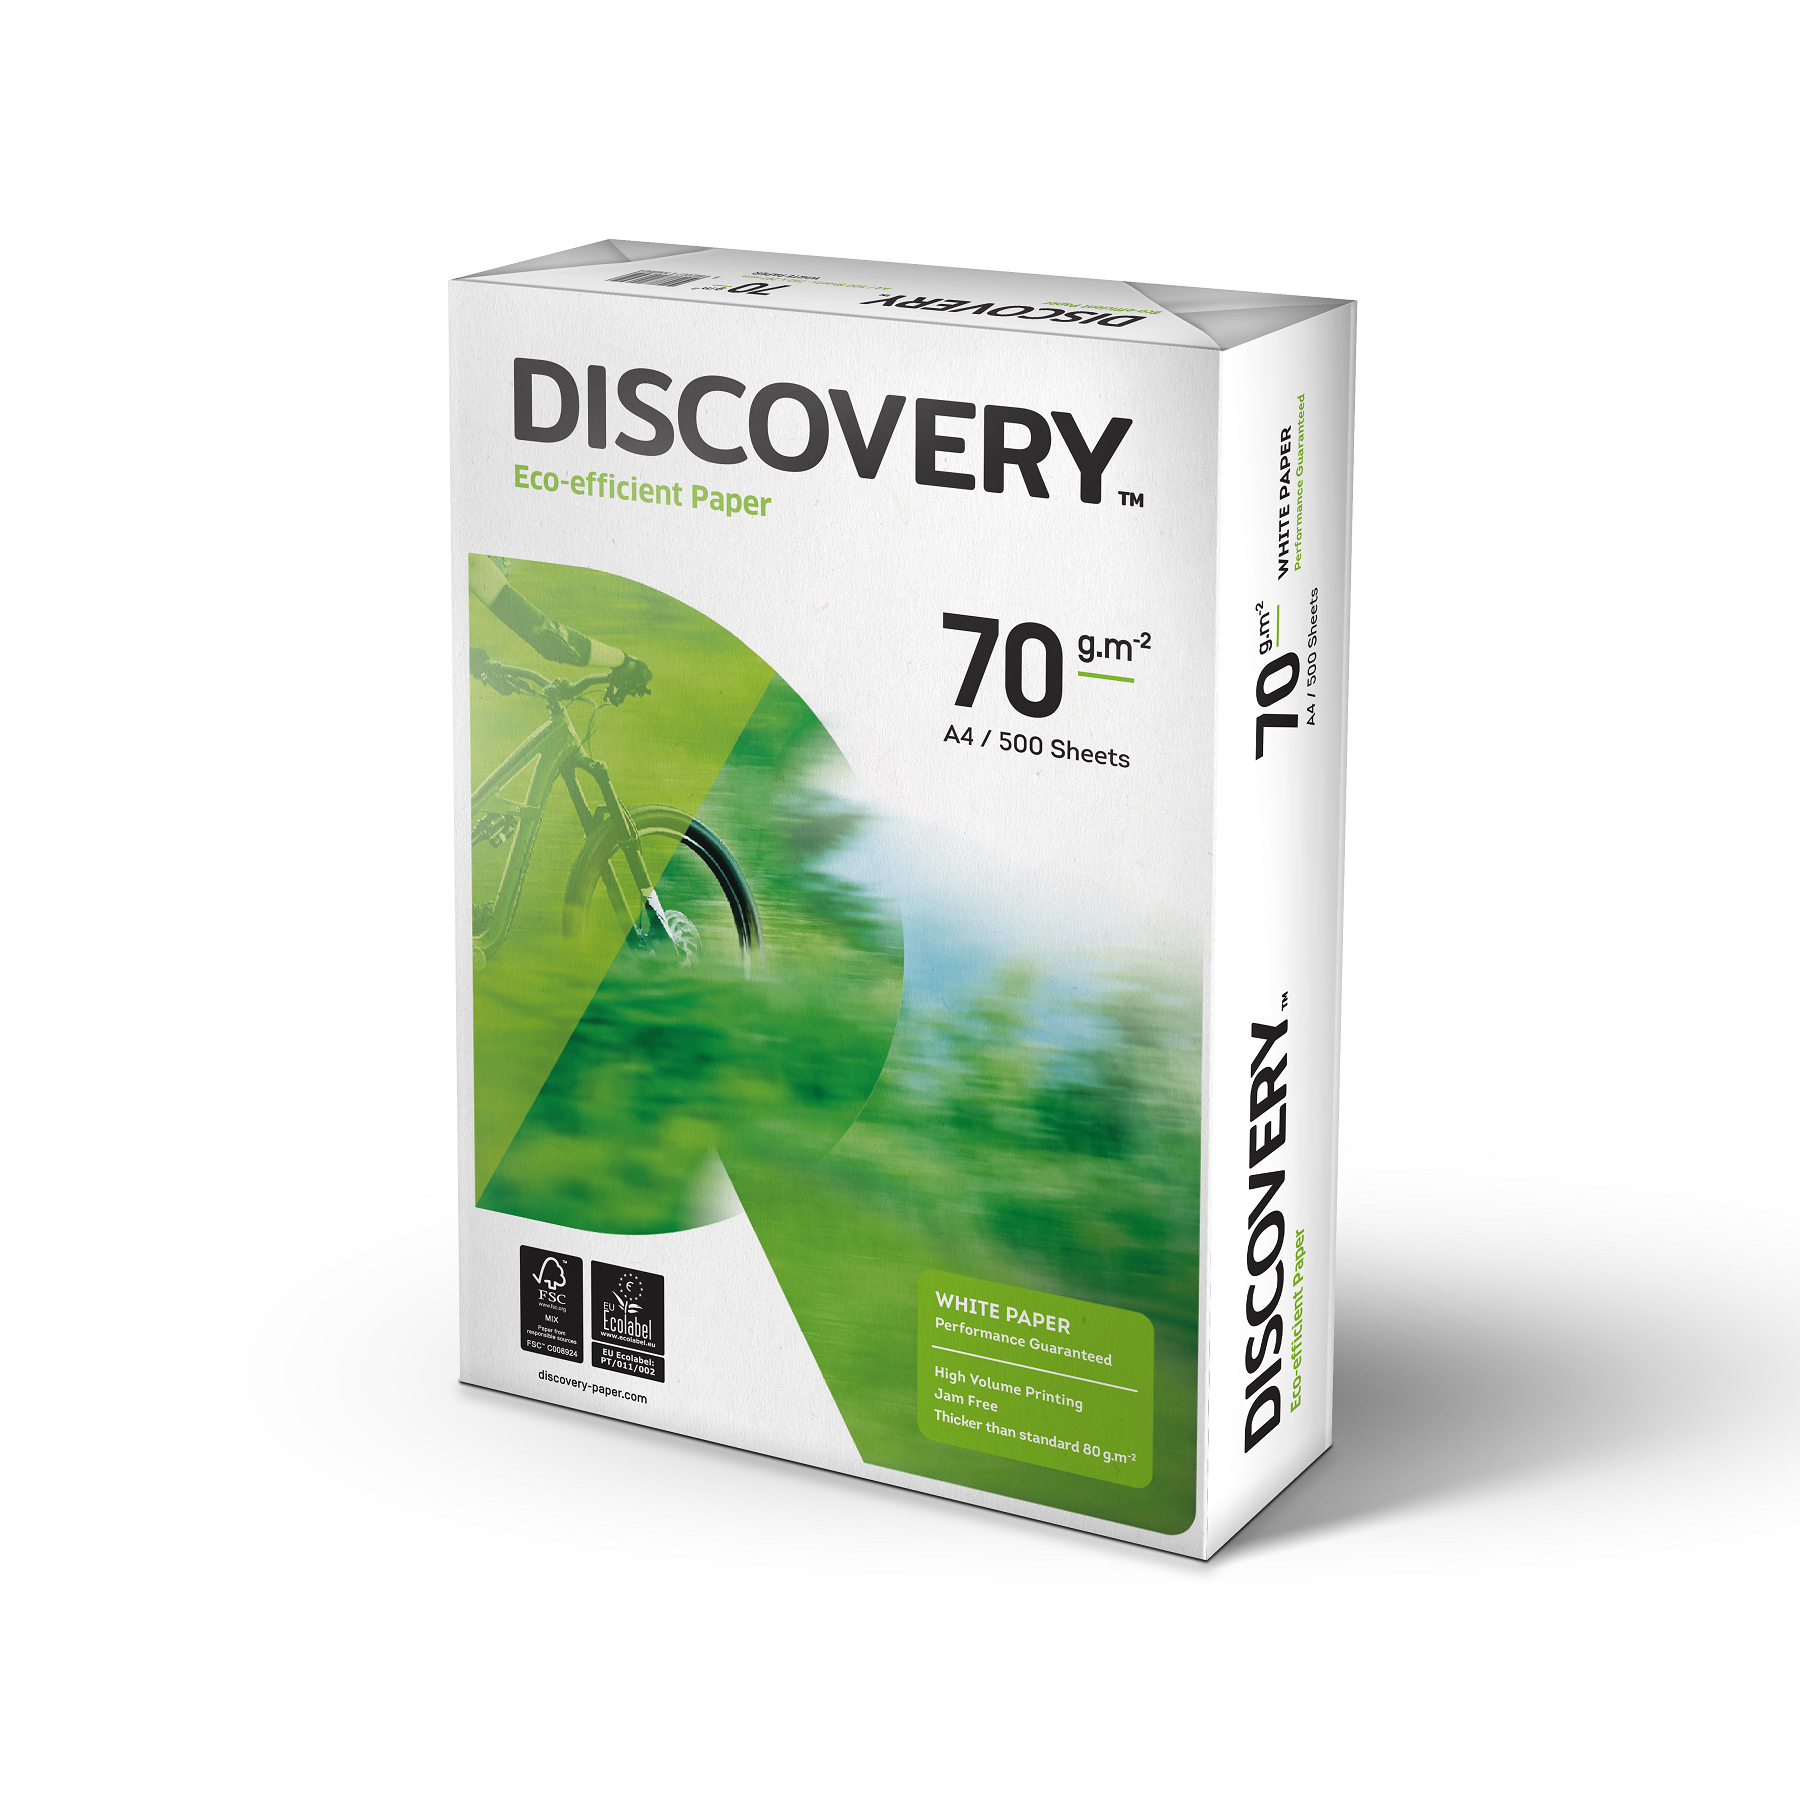 Discovery Everyday Paper FSC 5x Ream-wrapped Pks 70gsm A4 White Ref NDI0700025 5x500 Sheets